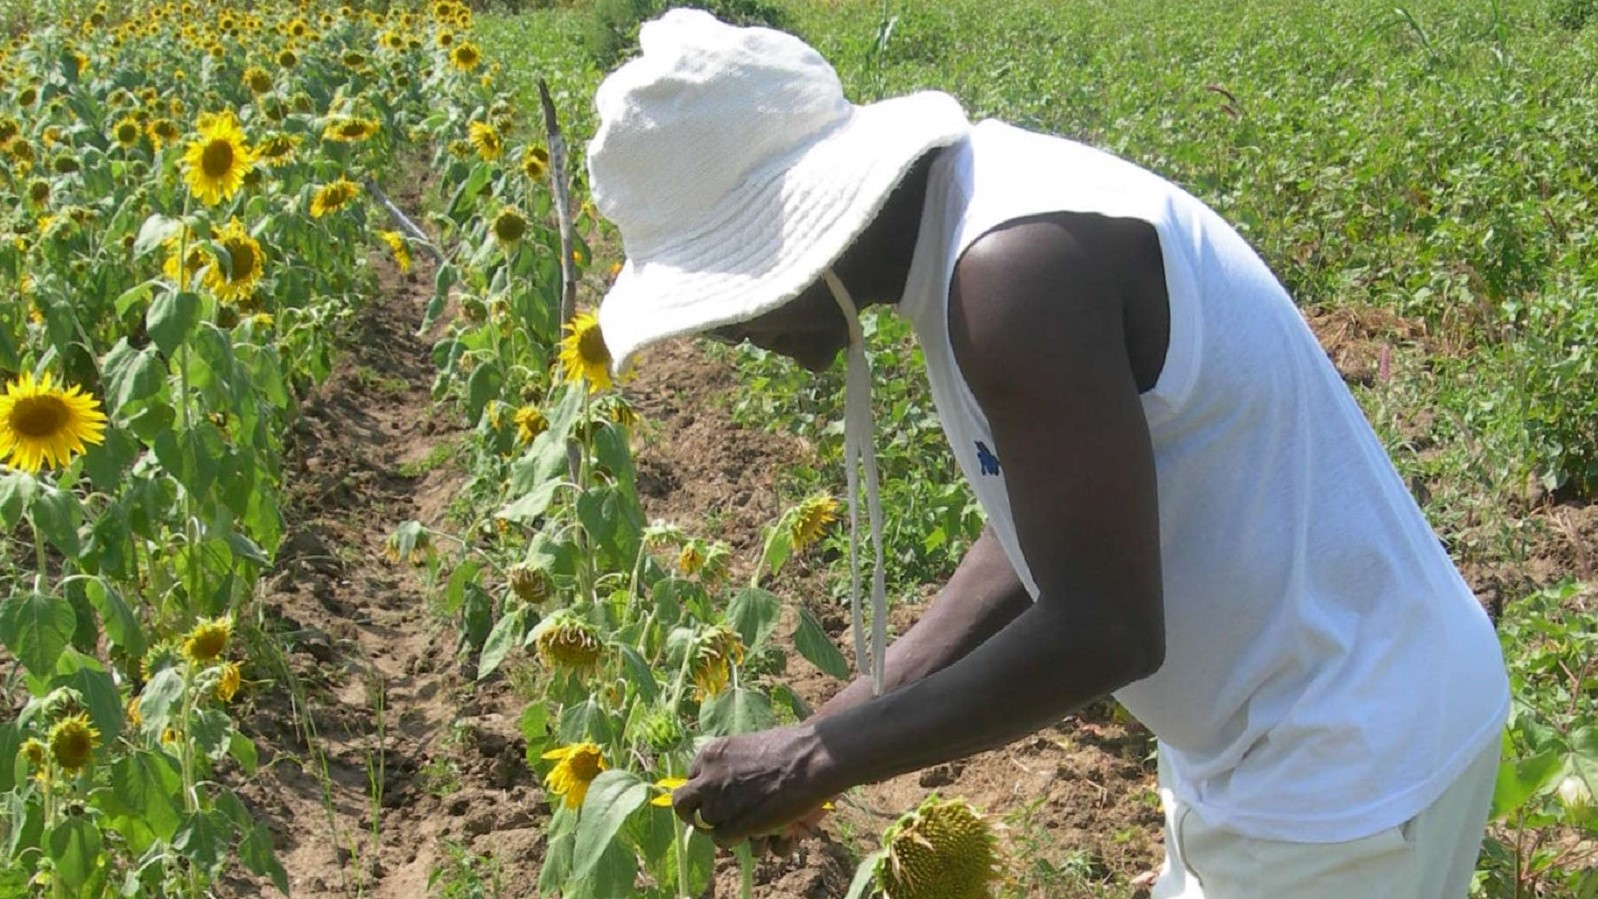 Rows of sunflowers planted among cotton as a trap crop for pests and refuge for natural enemies. Photo: OBEPAB